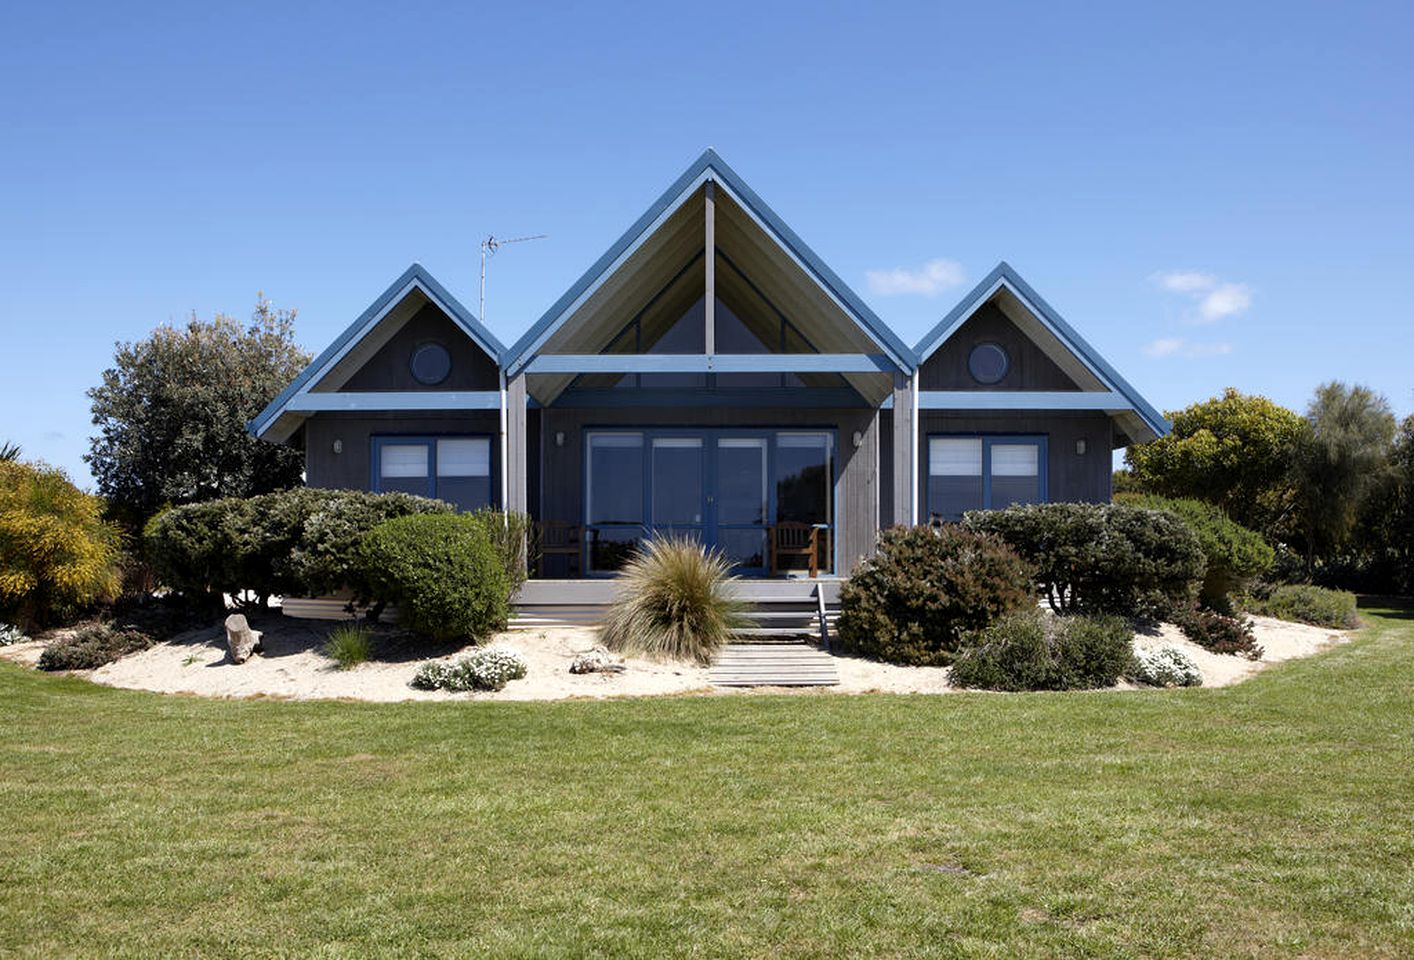 Cottages (Walkerville, Victoria, Australia)